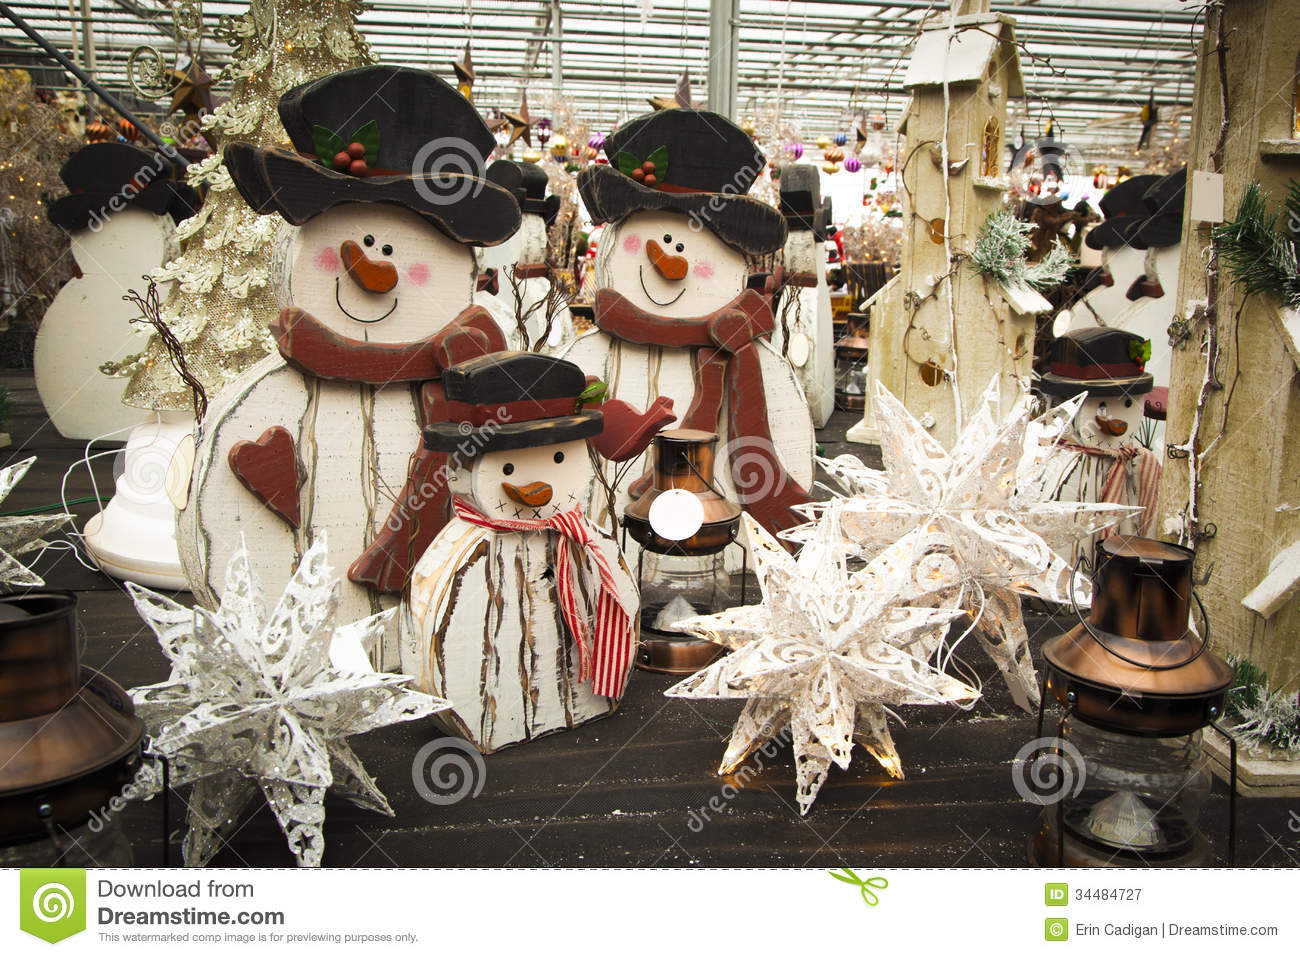 Decorations for sale